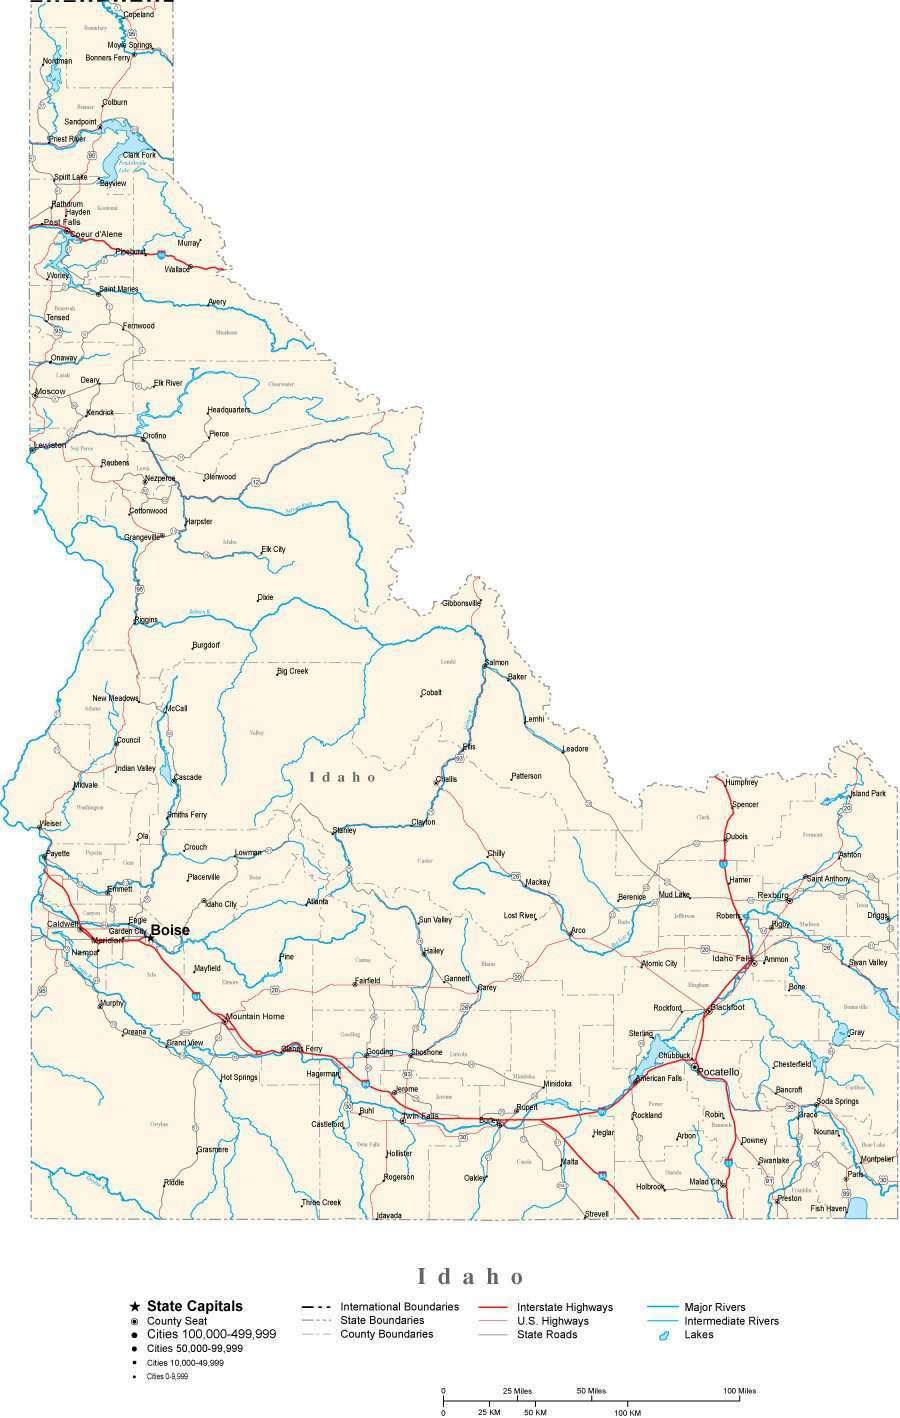 Idaho Map By County.Idaho State Map In Fit Together Style To Match Other States Map